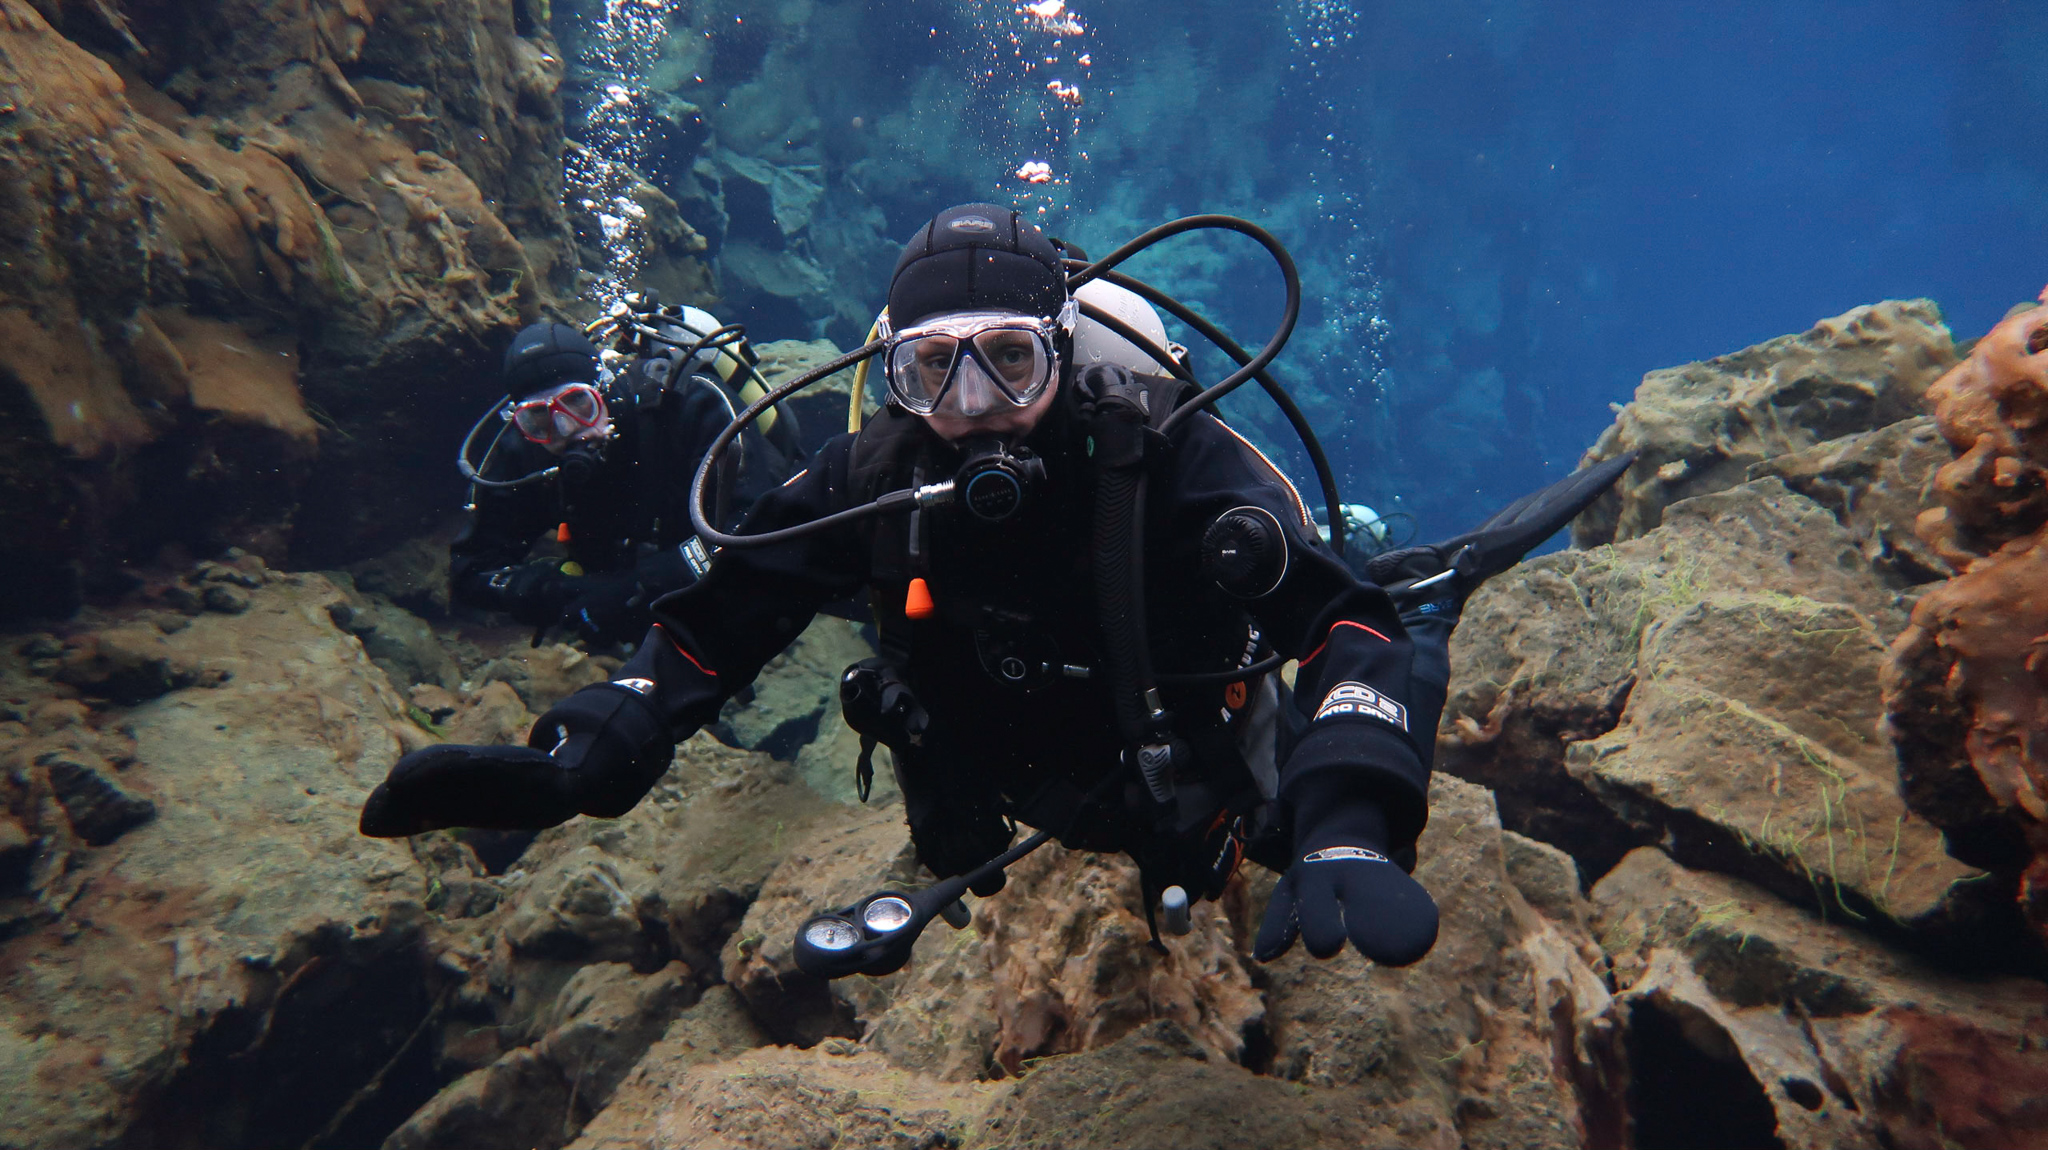 Des and Belinda scuba diving at Silfra Fissure in Thingvellir National Park, Iceland. Photo by Tania Roque of DIVE.IS